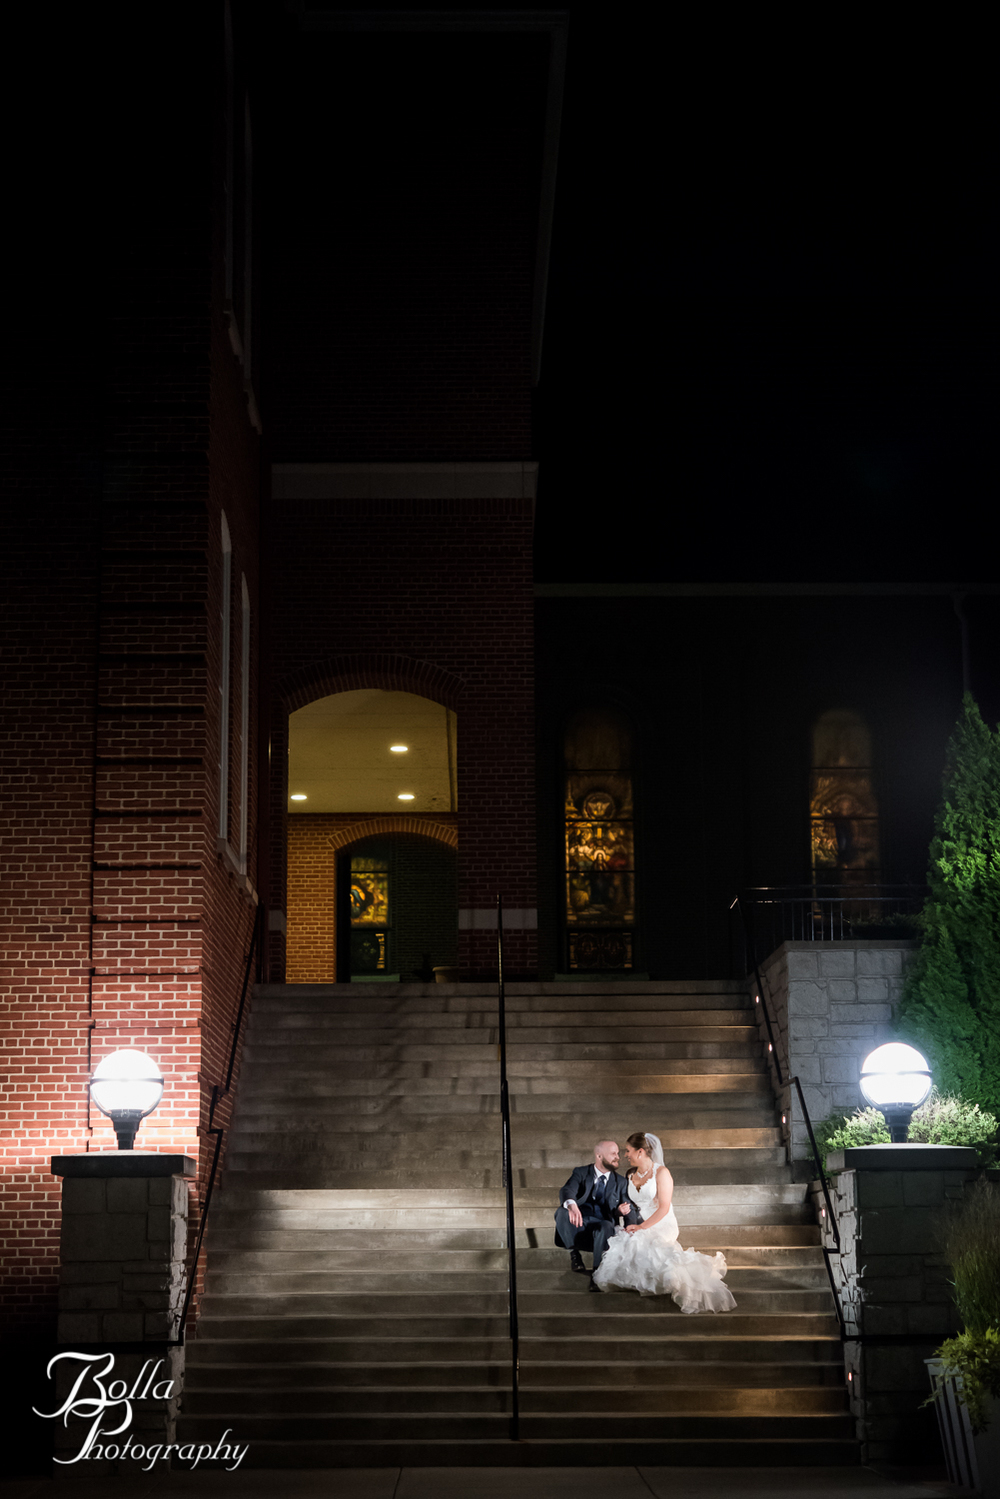 Bolla_Photography_St_Louis_wedding_photographer-0531.jpg